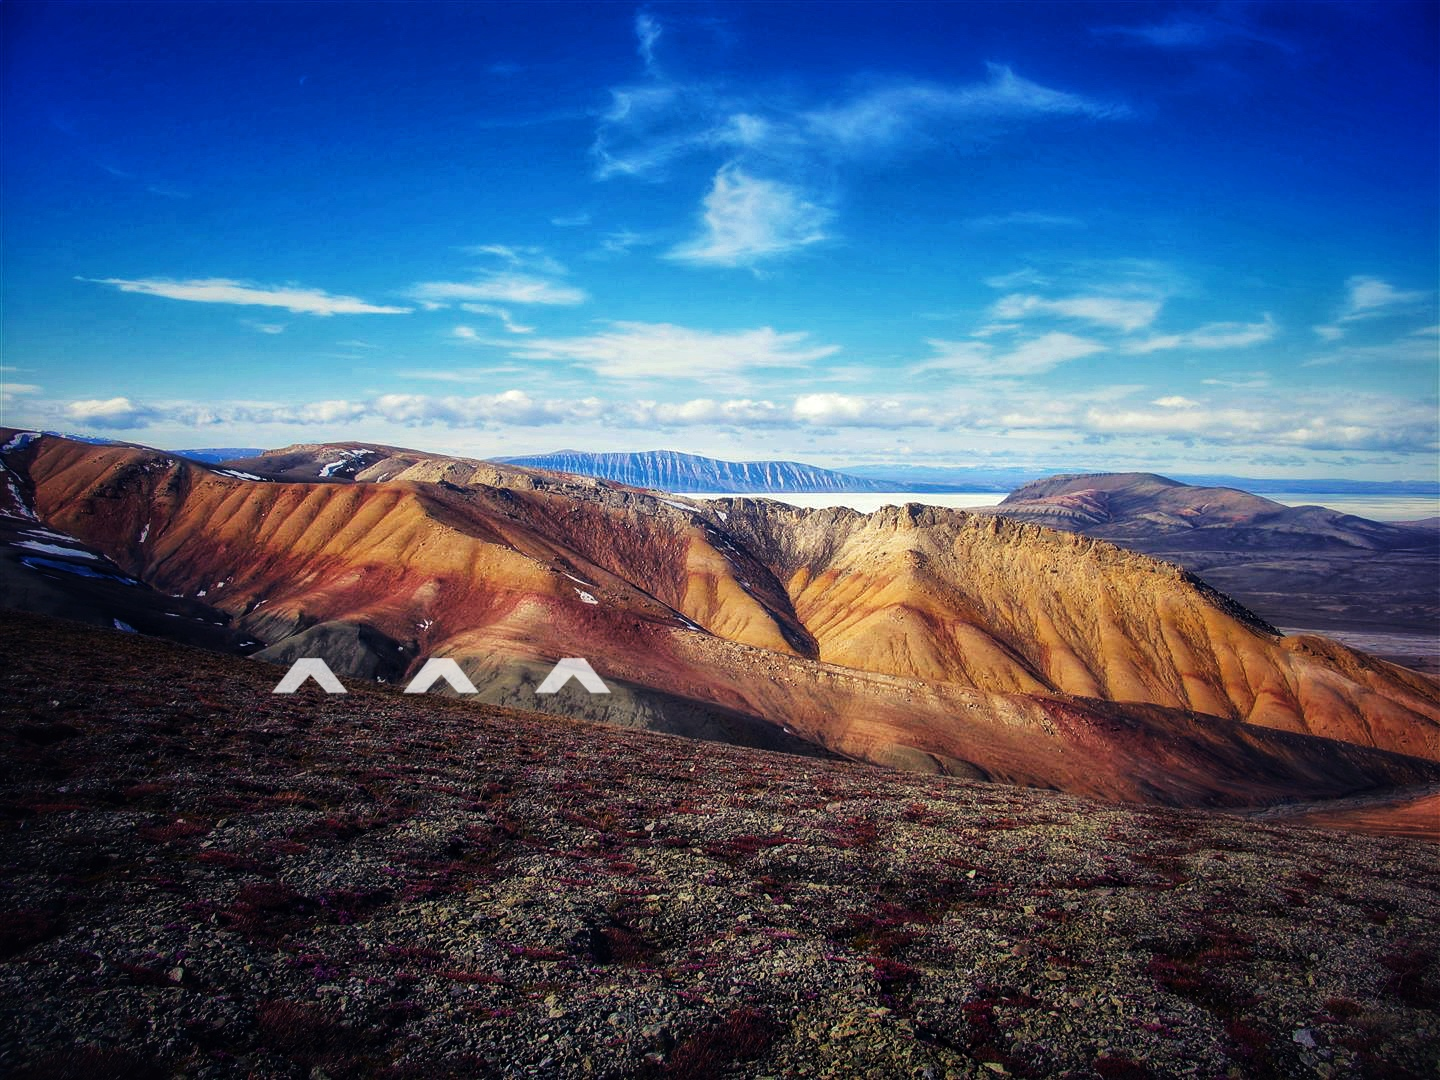 The change from green to red rock on northern Ellesmere Island marks the time when 90 percent of life was lost during the Permian Extinction. A large spike in mercury content was found here.